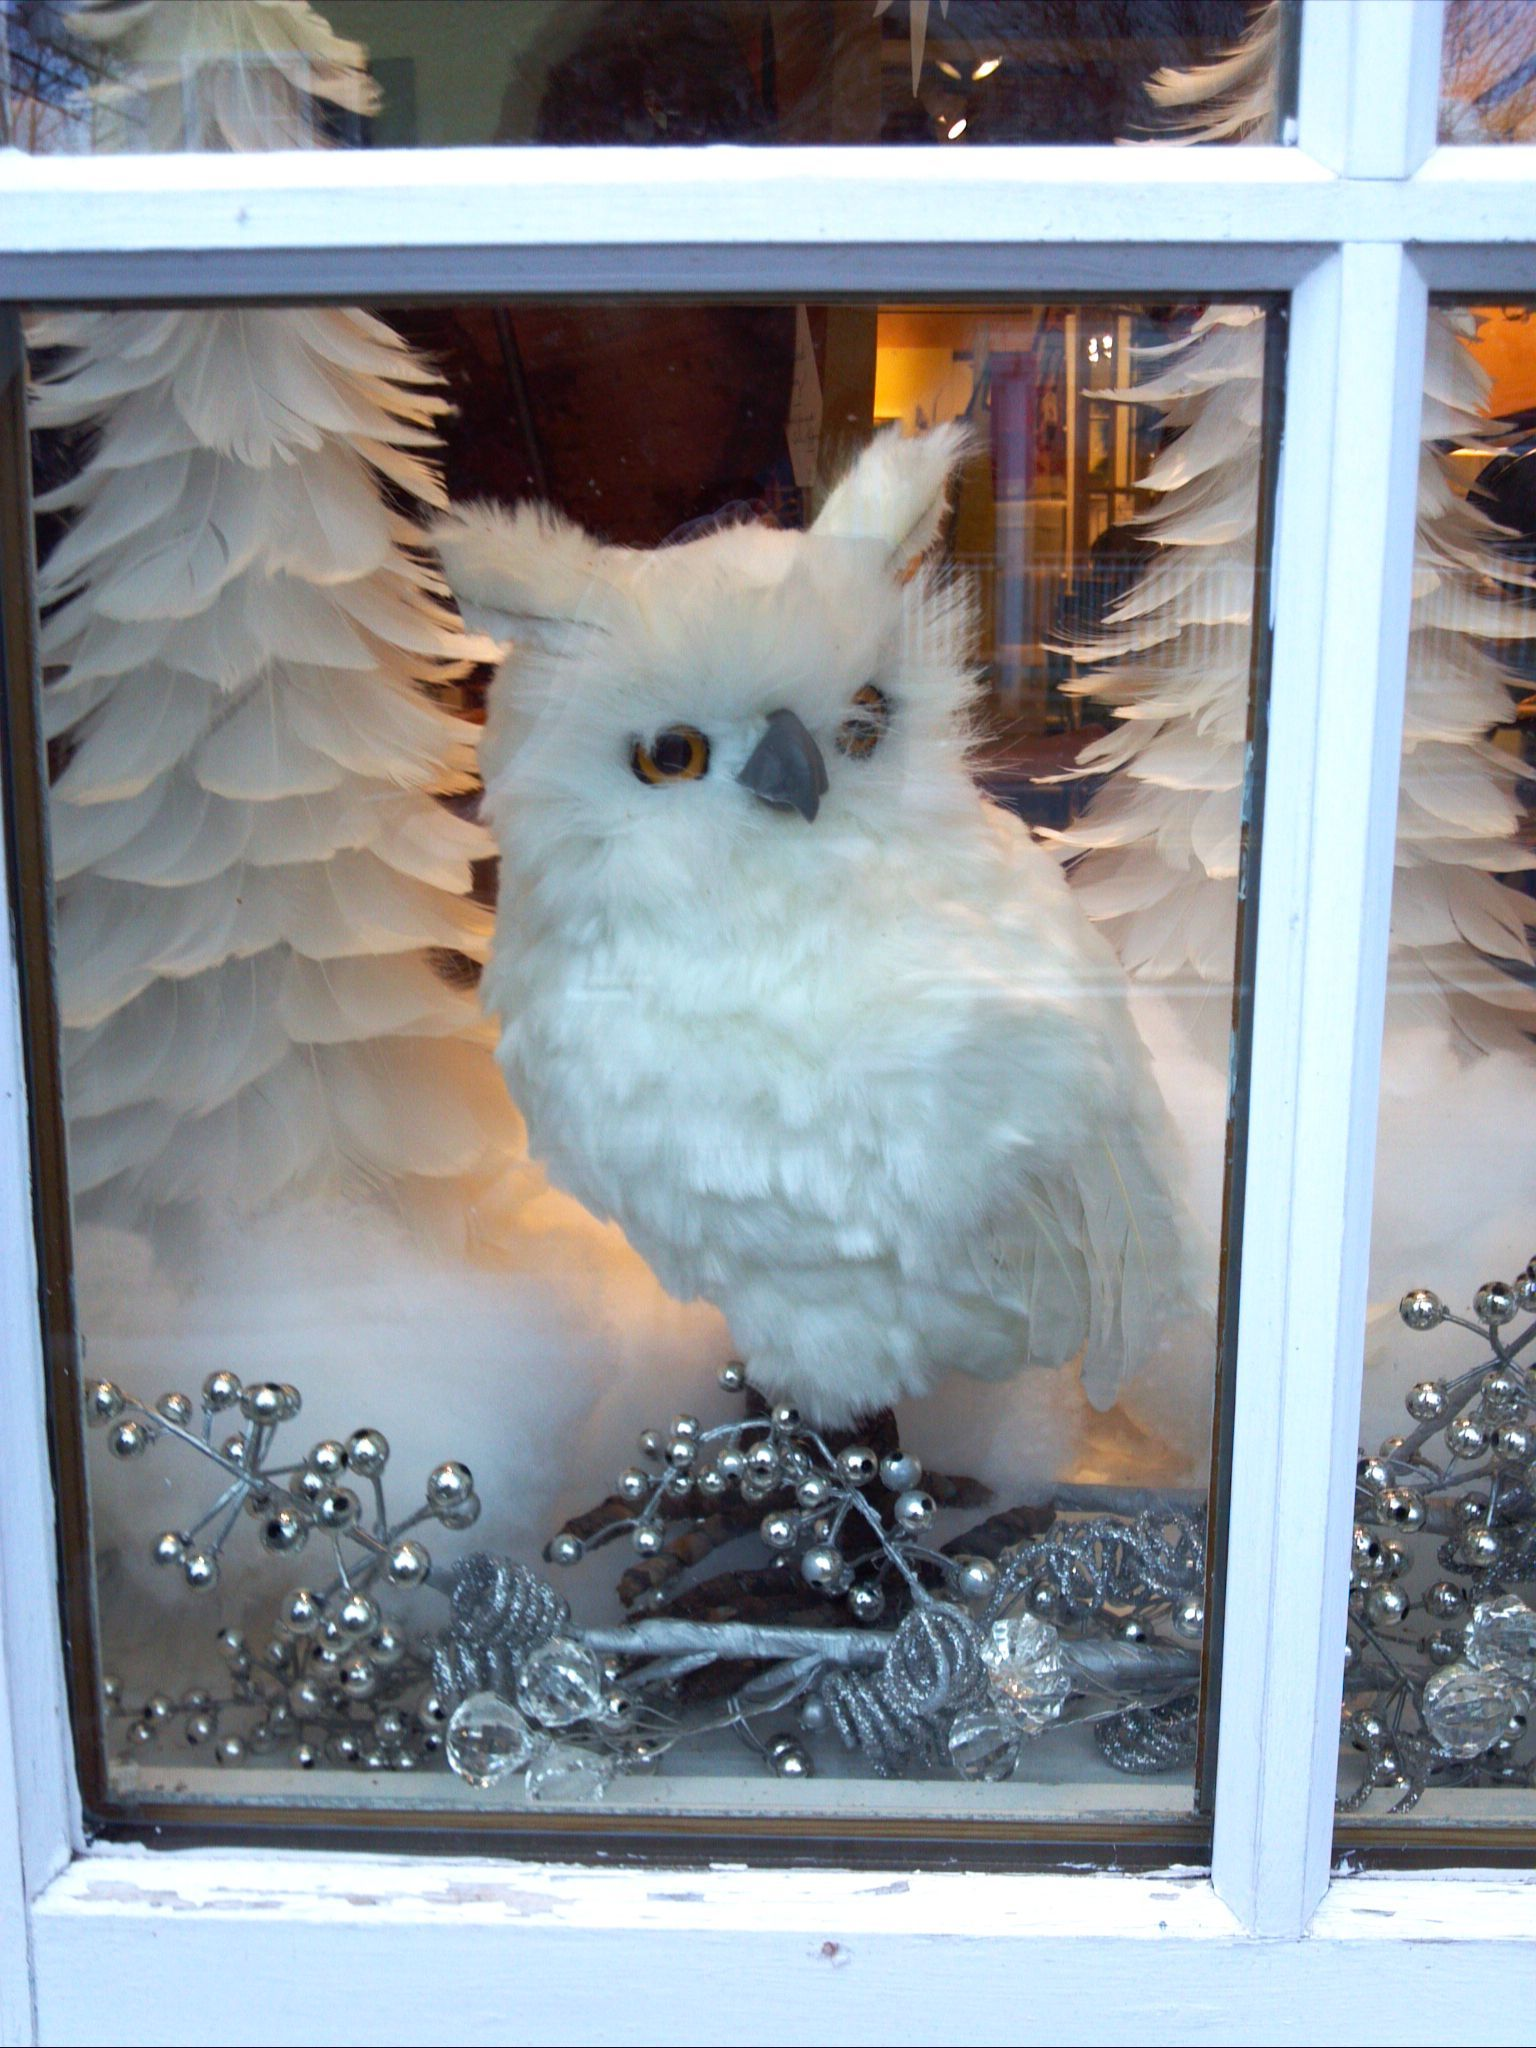 Cute white owl & feather trees in Christmas display window